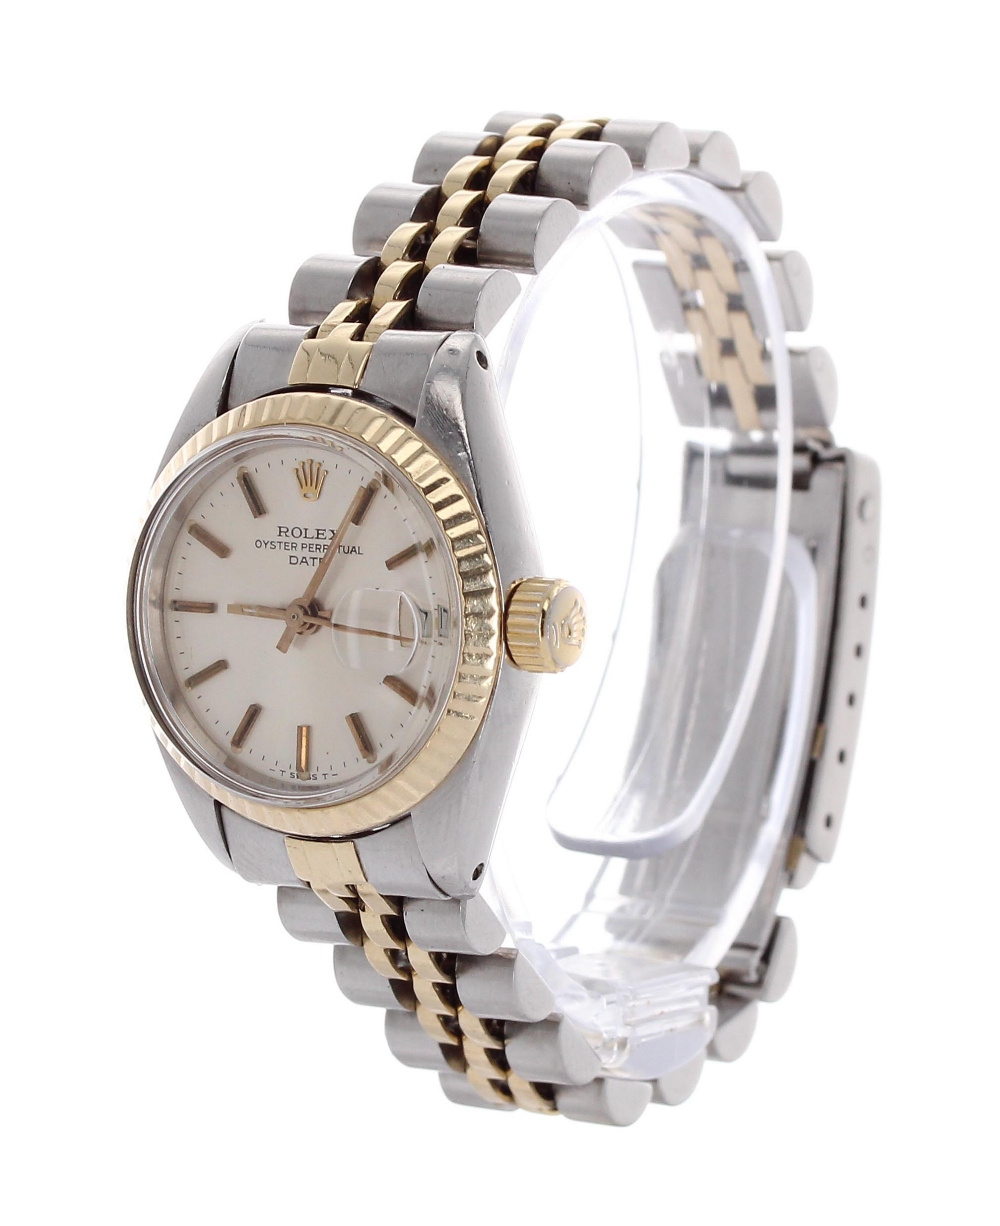 Lot 49 - Rolex Oyster Perpetual Datejust gold and stainless steel lady's bracelet watch, ref. 6917, circa